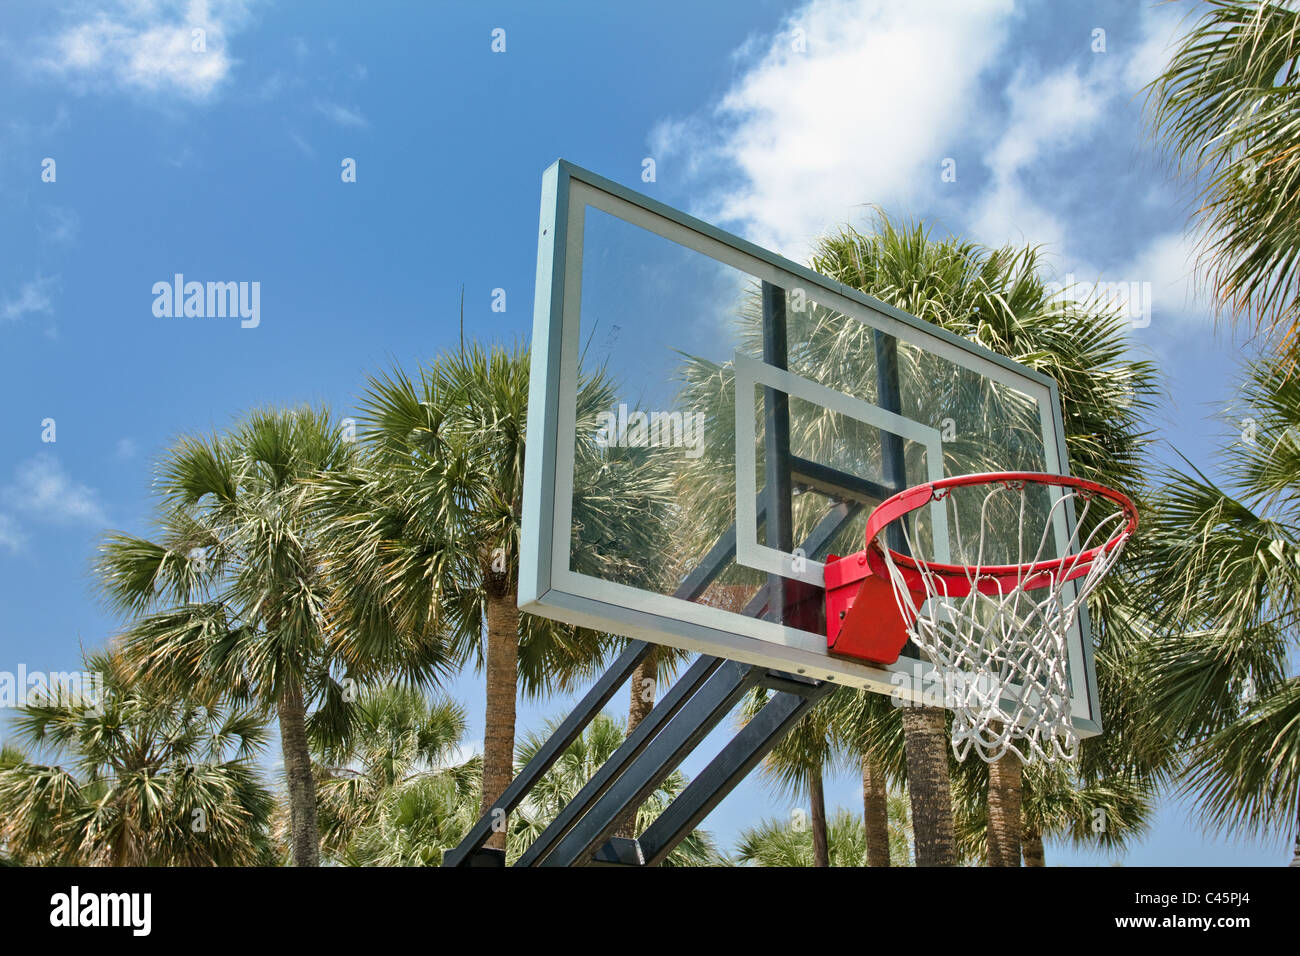 basketball hoop at city park in South Florida - Stock Image